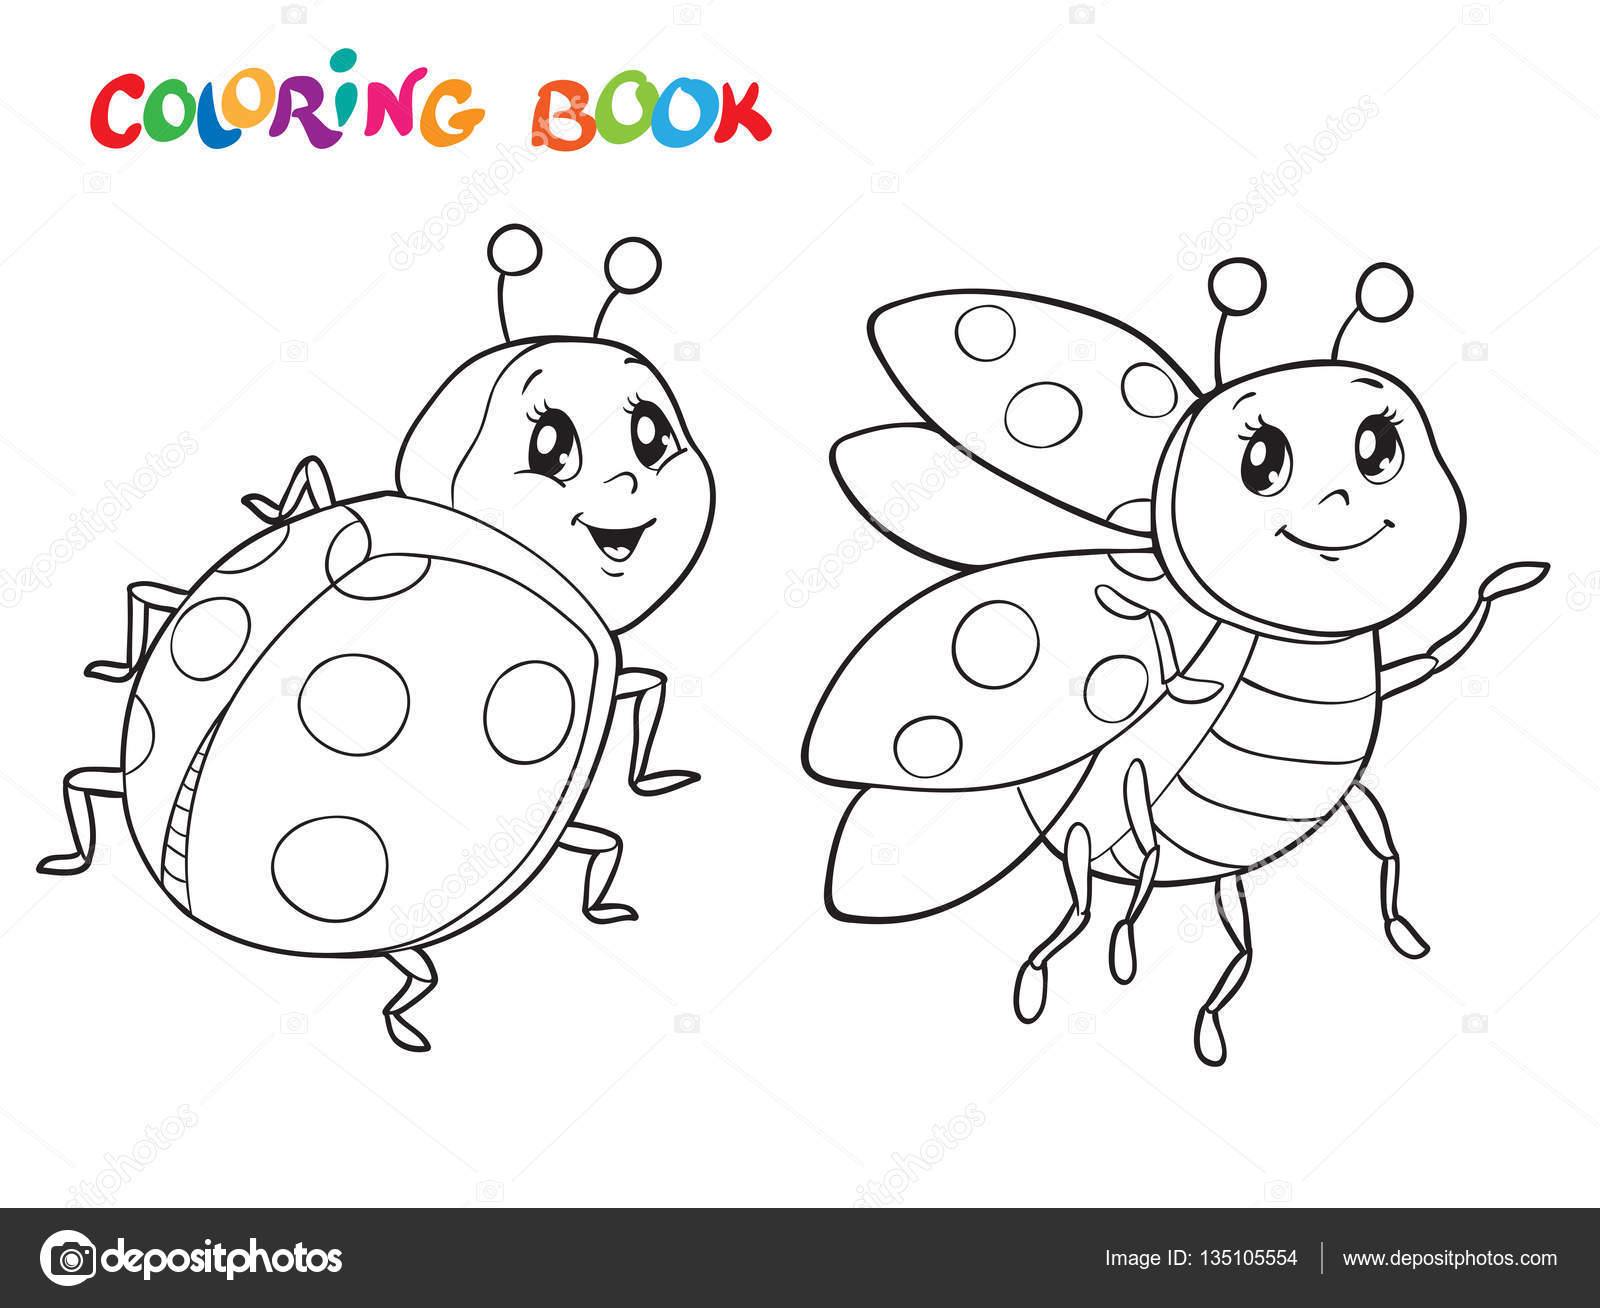 Coloring Book With Ladybug Vector Illustration Isolated On White